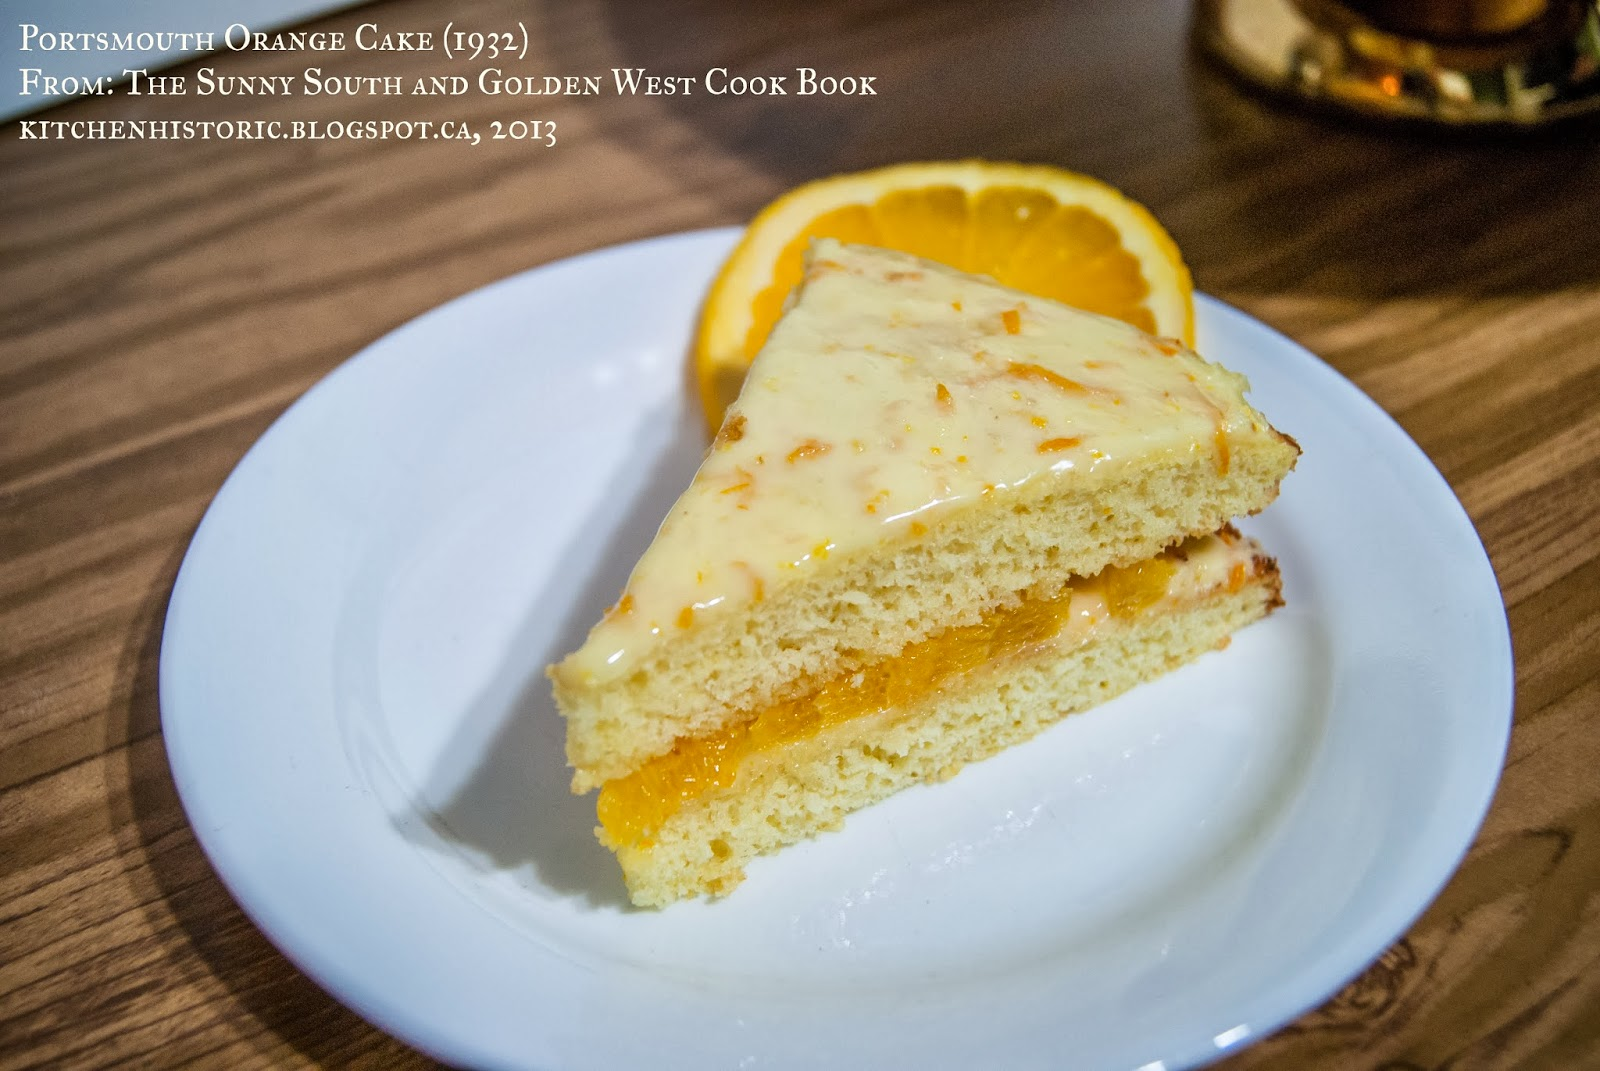 The Cake I Want To Share With You Today Has A Bit Of An Interesting  History, Much Of Which Is Strongly Tied To New Hampshire. Portsmouth Orange  Cake Is ... Design Ideas